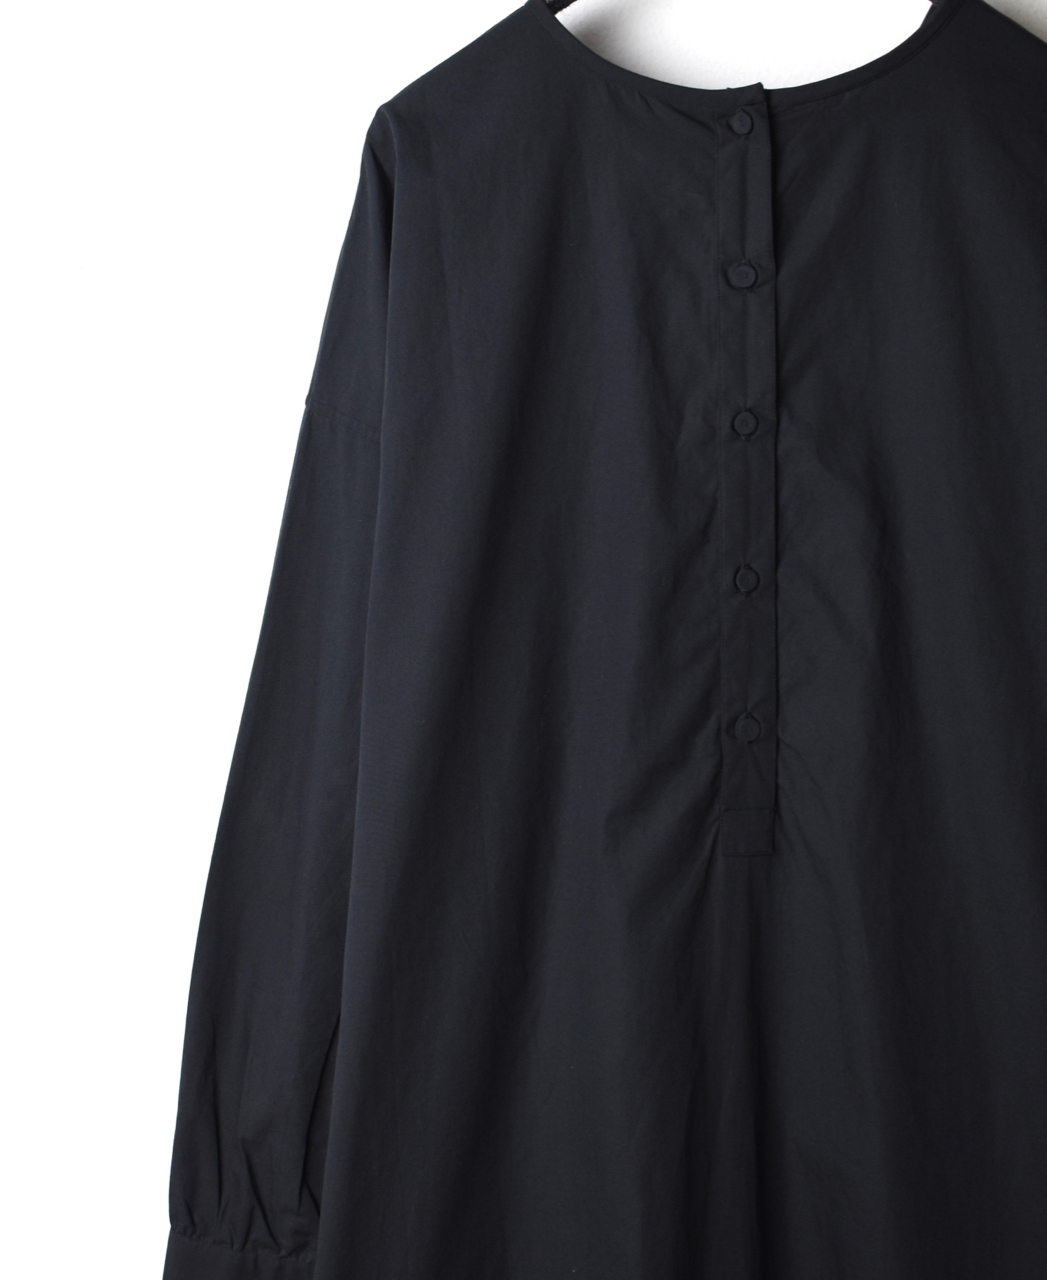 NMDS19532 ORGANIC POPLIN BACK OPENING SHIRT DRESS